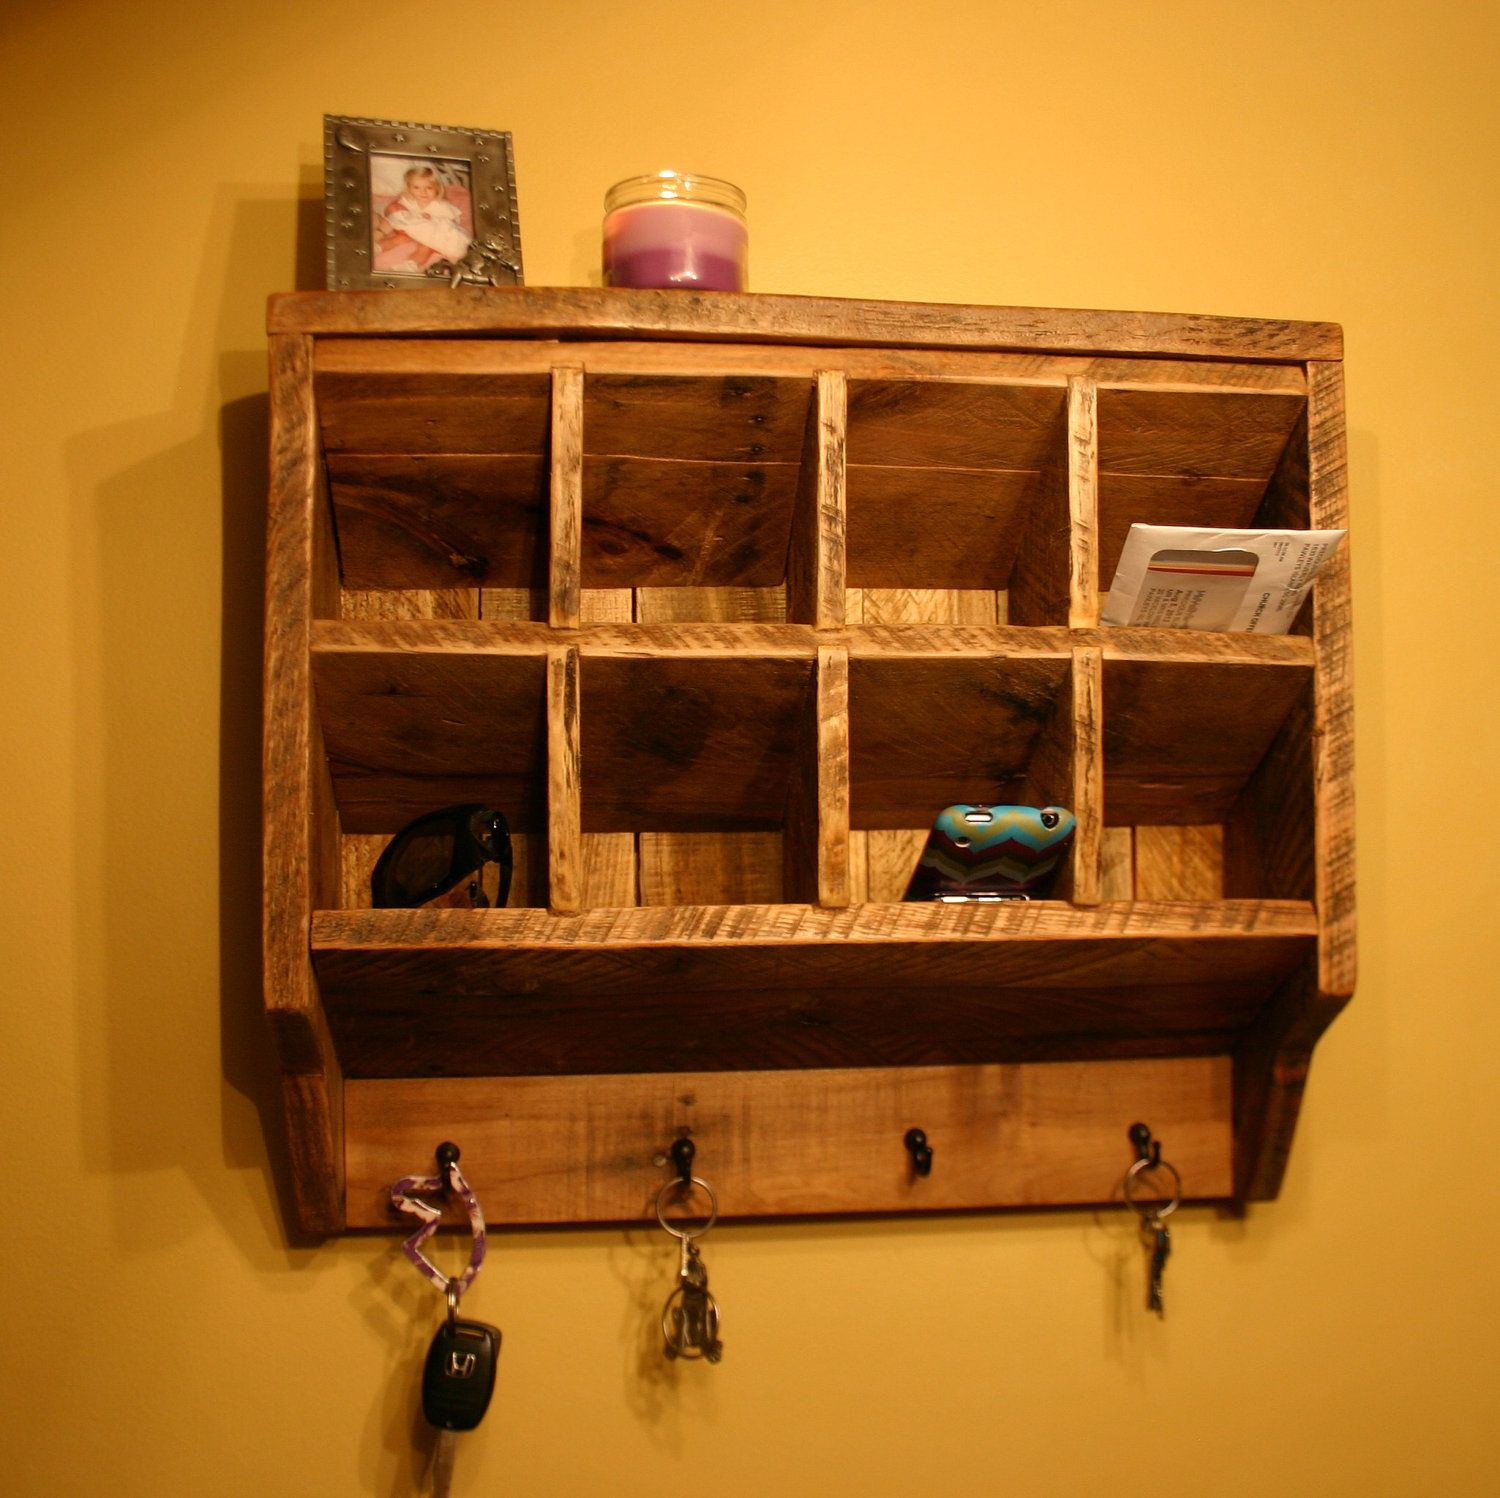 Uncategorized Key Holder For The Wall key rack holder wall organizer reclaimed wood and wood